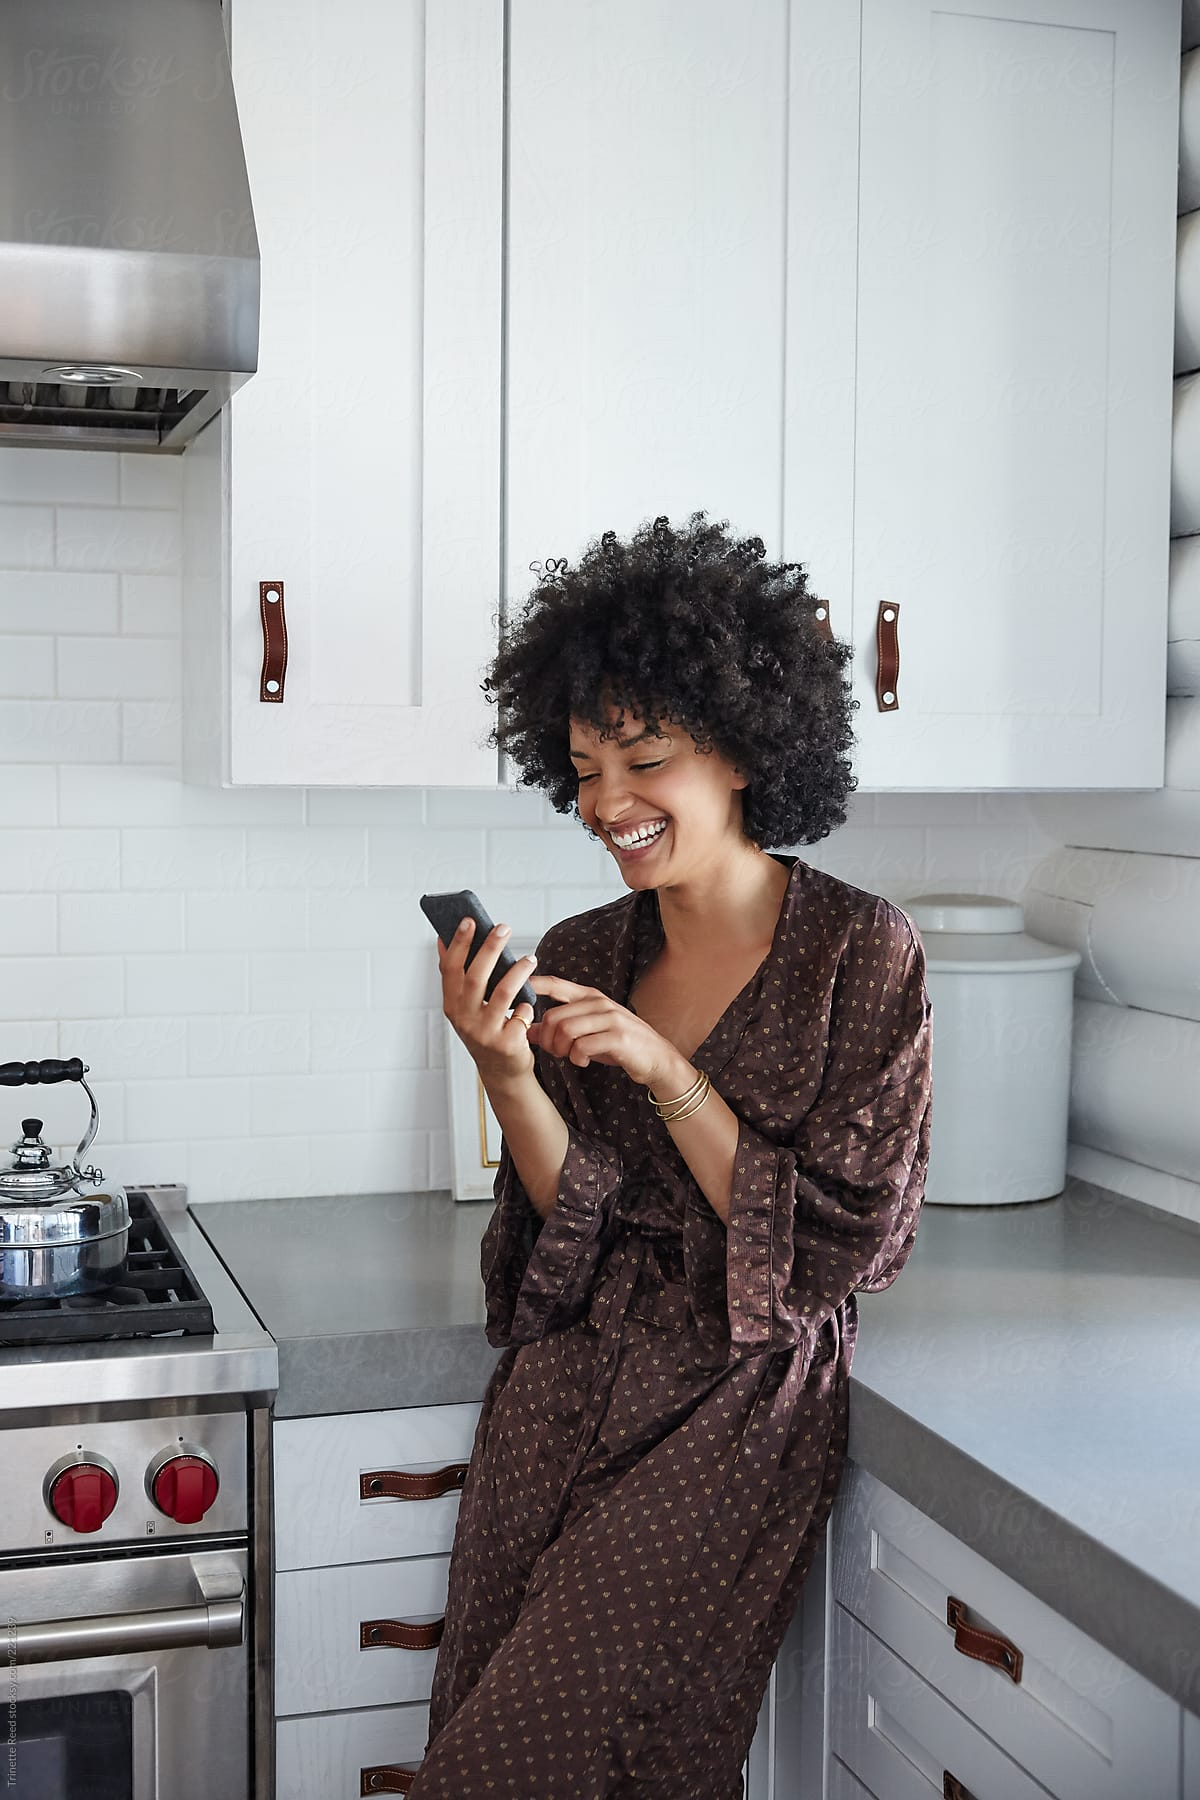 African American Woman On Her Phone In Kitchen Stocksy United